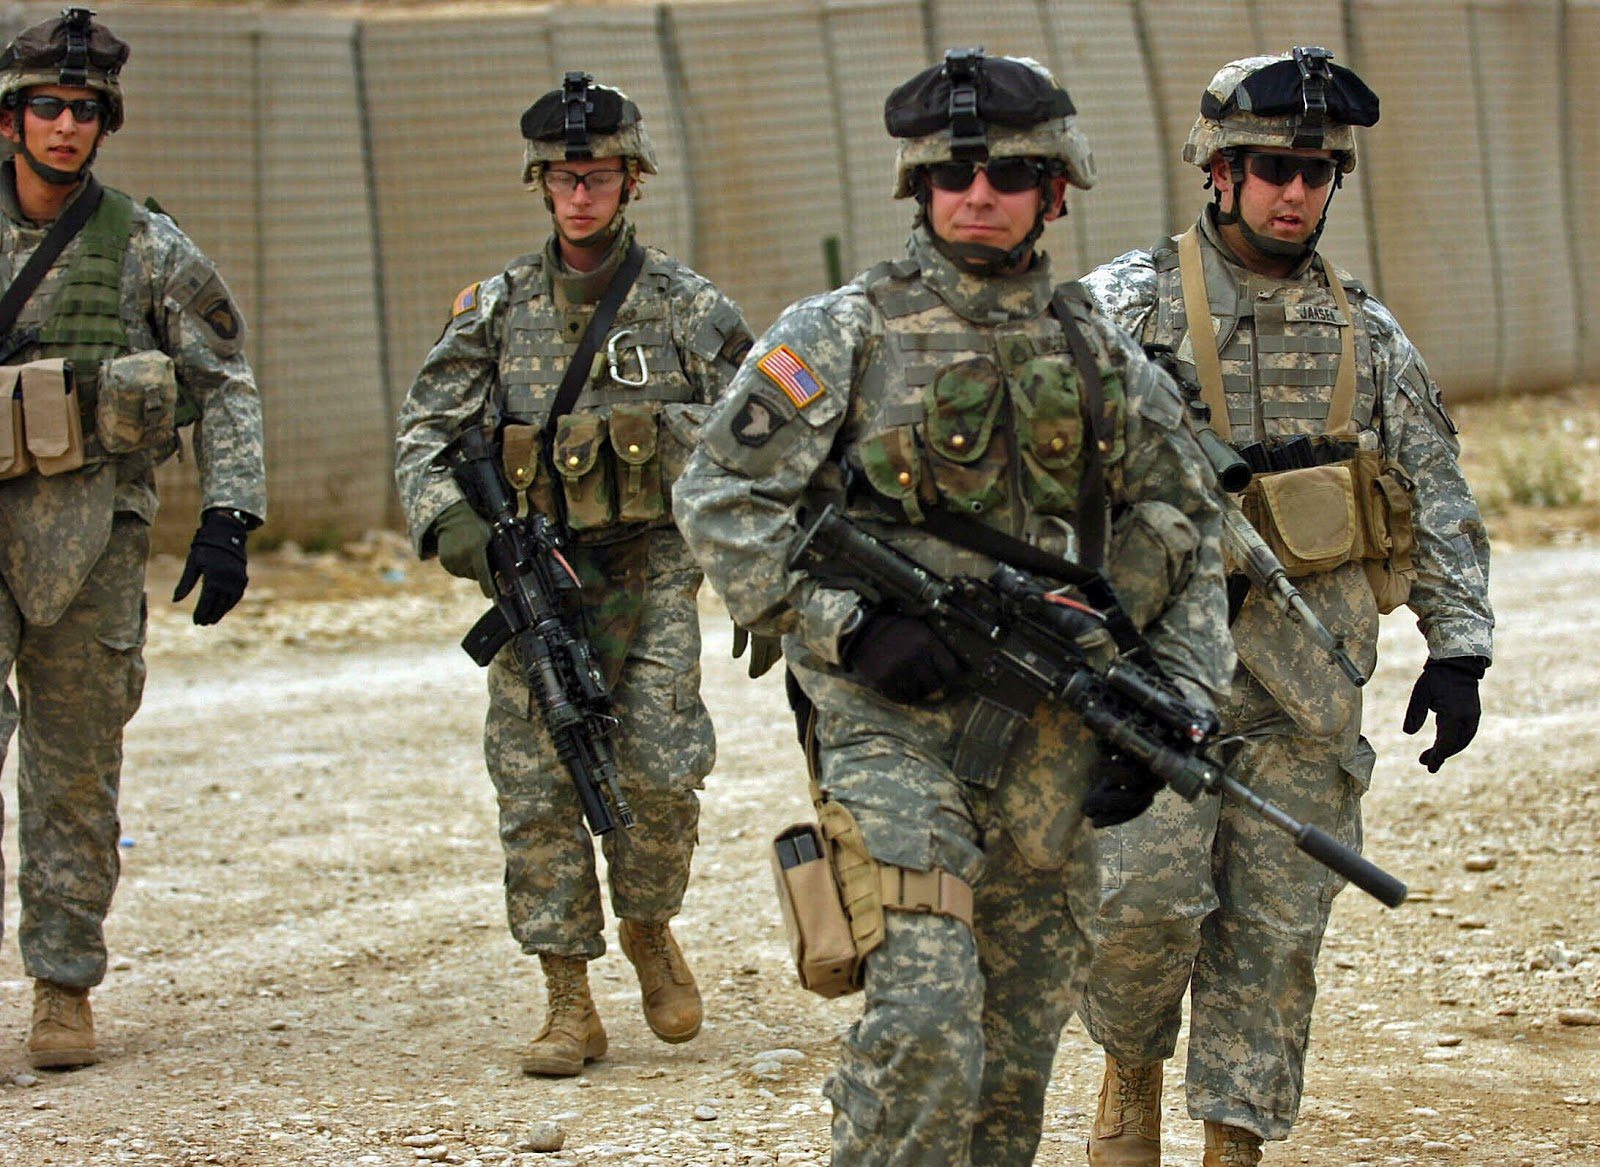 ... Picture Clip: United States Army | United States Military Wallpaper